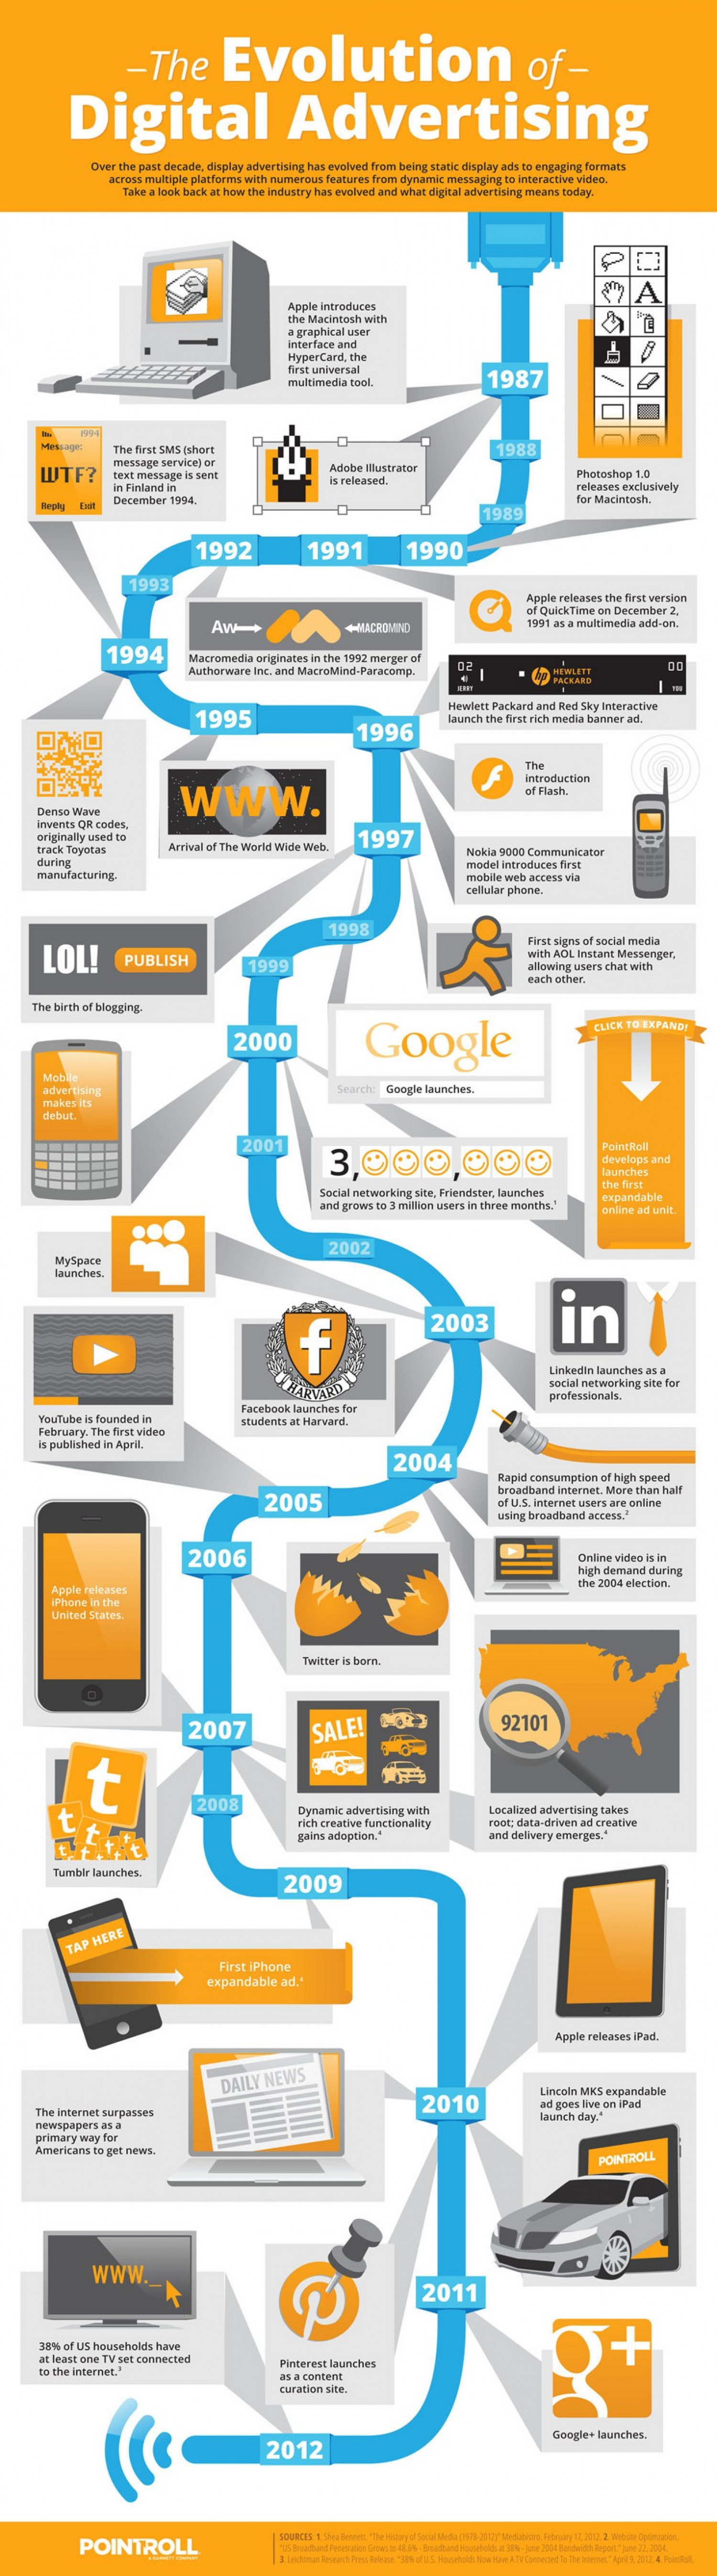 The Evolution of Digital Advertising Infographic